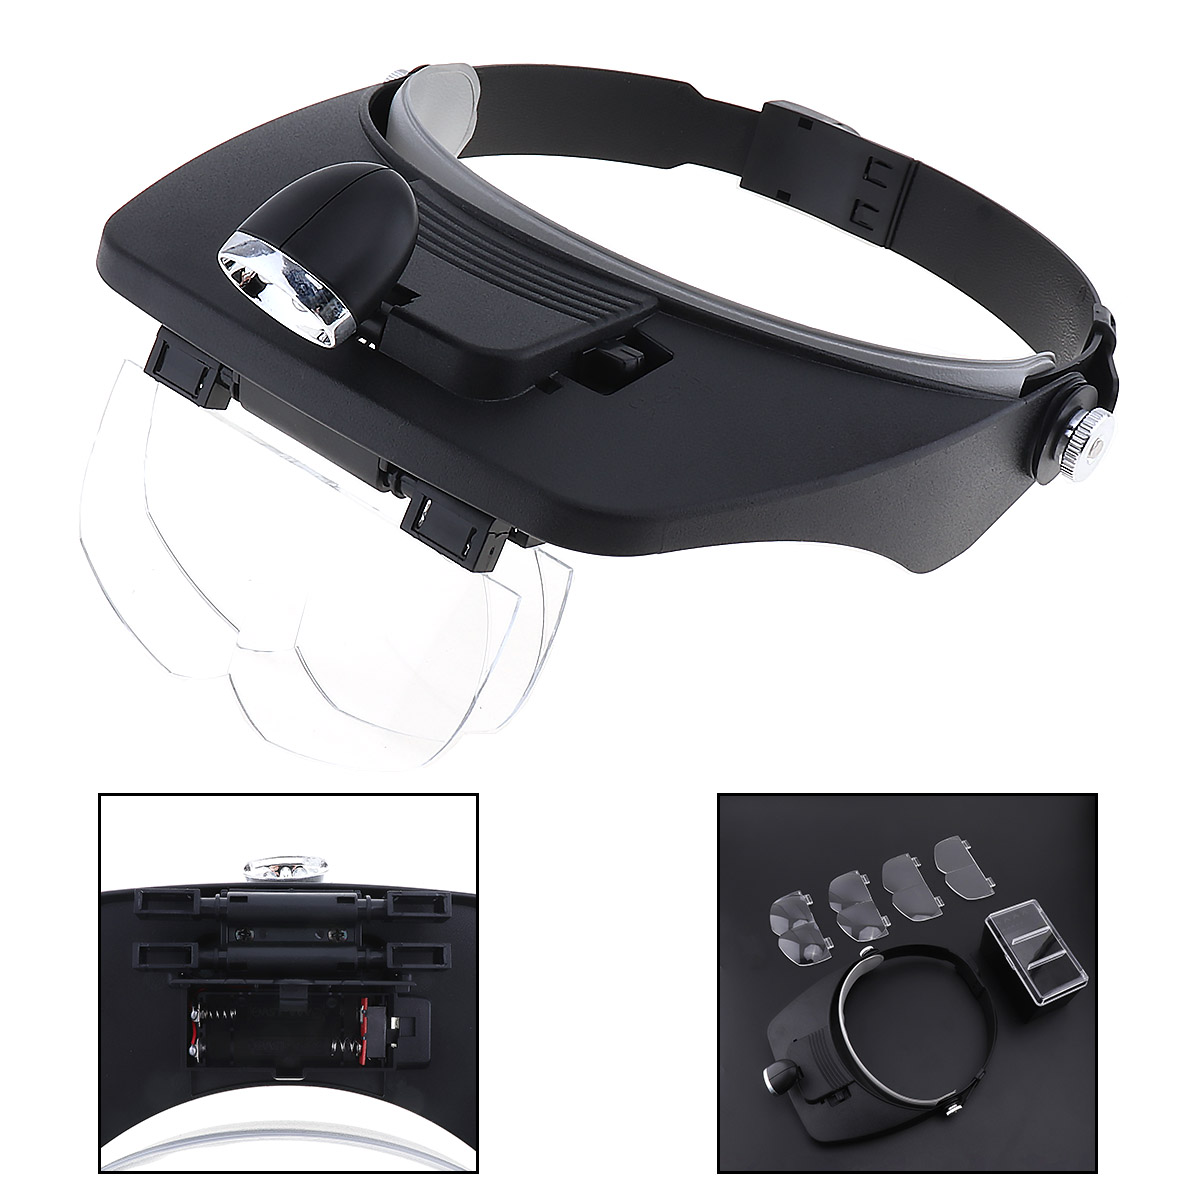 New 7X Headband Type Magnifying Glass with LED Light and 4 Magnifying Lens for Jewel Repair hot adjustable loupe headband led light magnifying glass with 4 x lens for jeweler watch repair